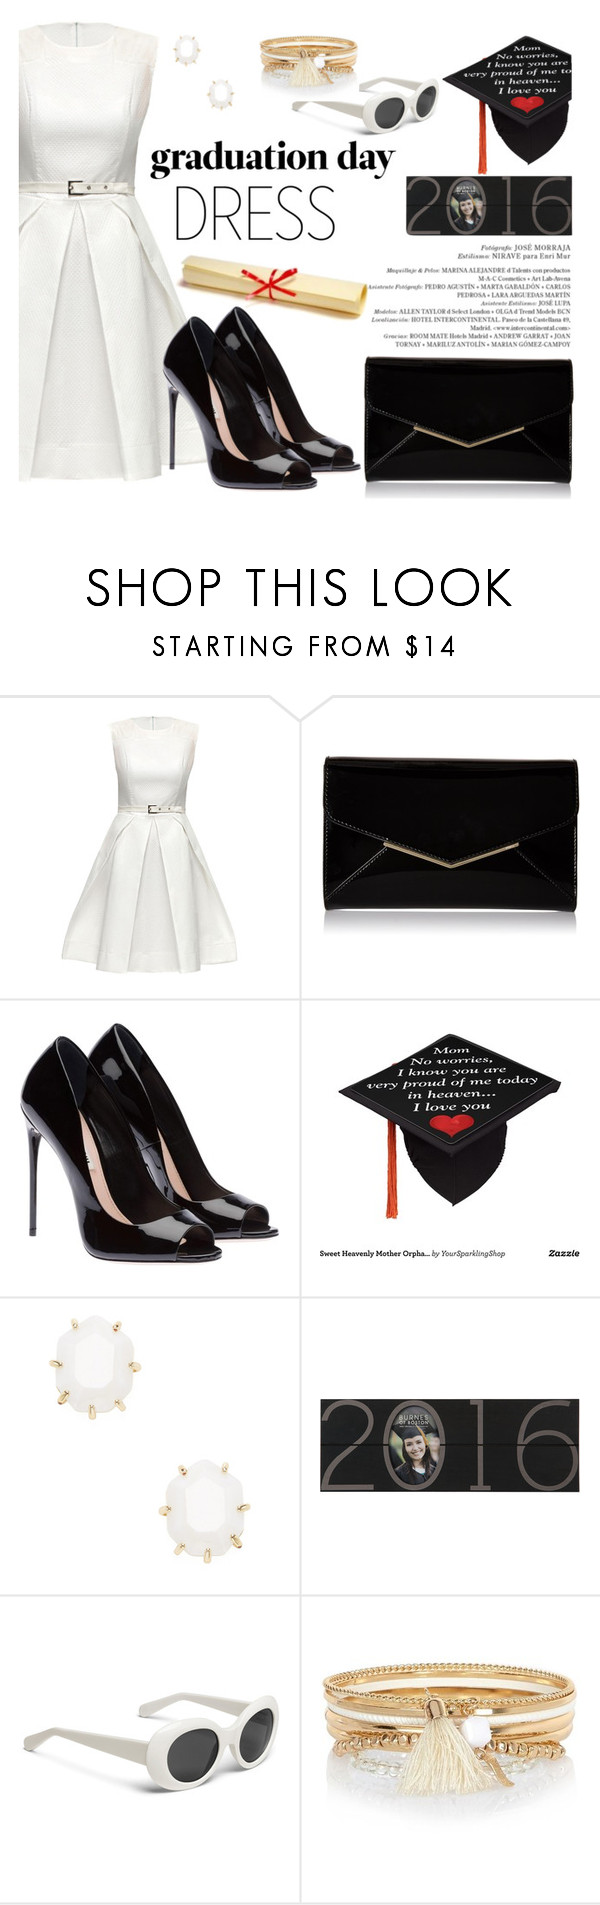 """Graduation Day Dress"" by louise-frierson ❤ liked on Polyvore featuring Lattori, Furla, Kendra Scott, River Island and graduationdaydress"